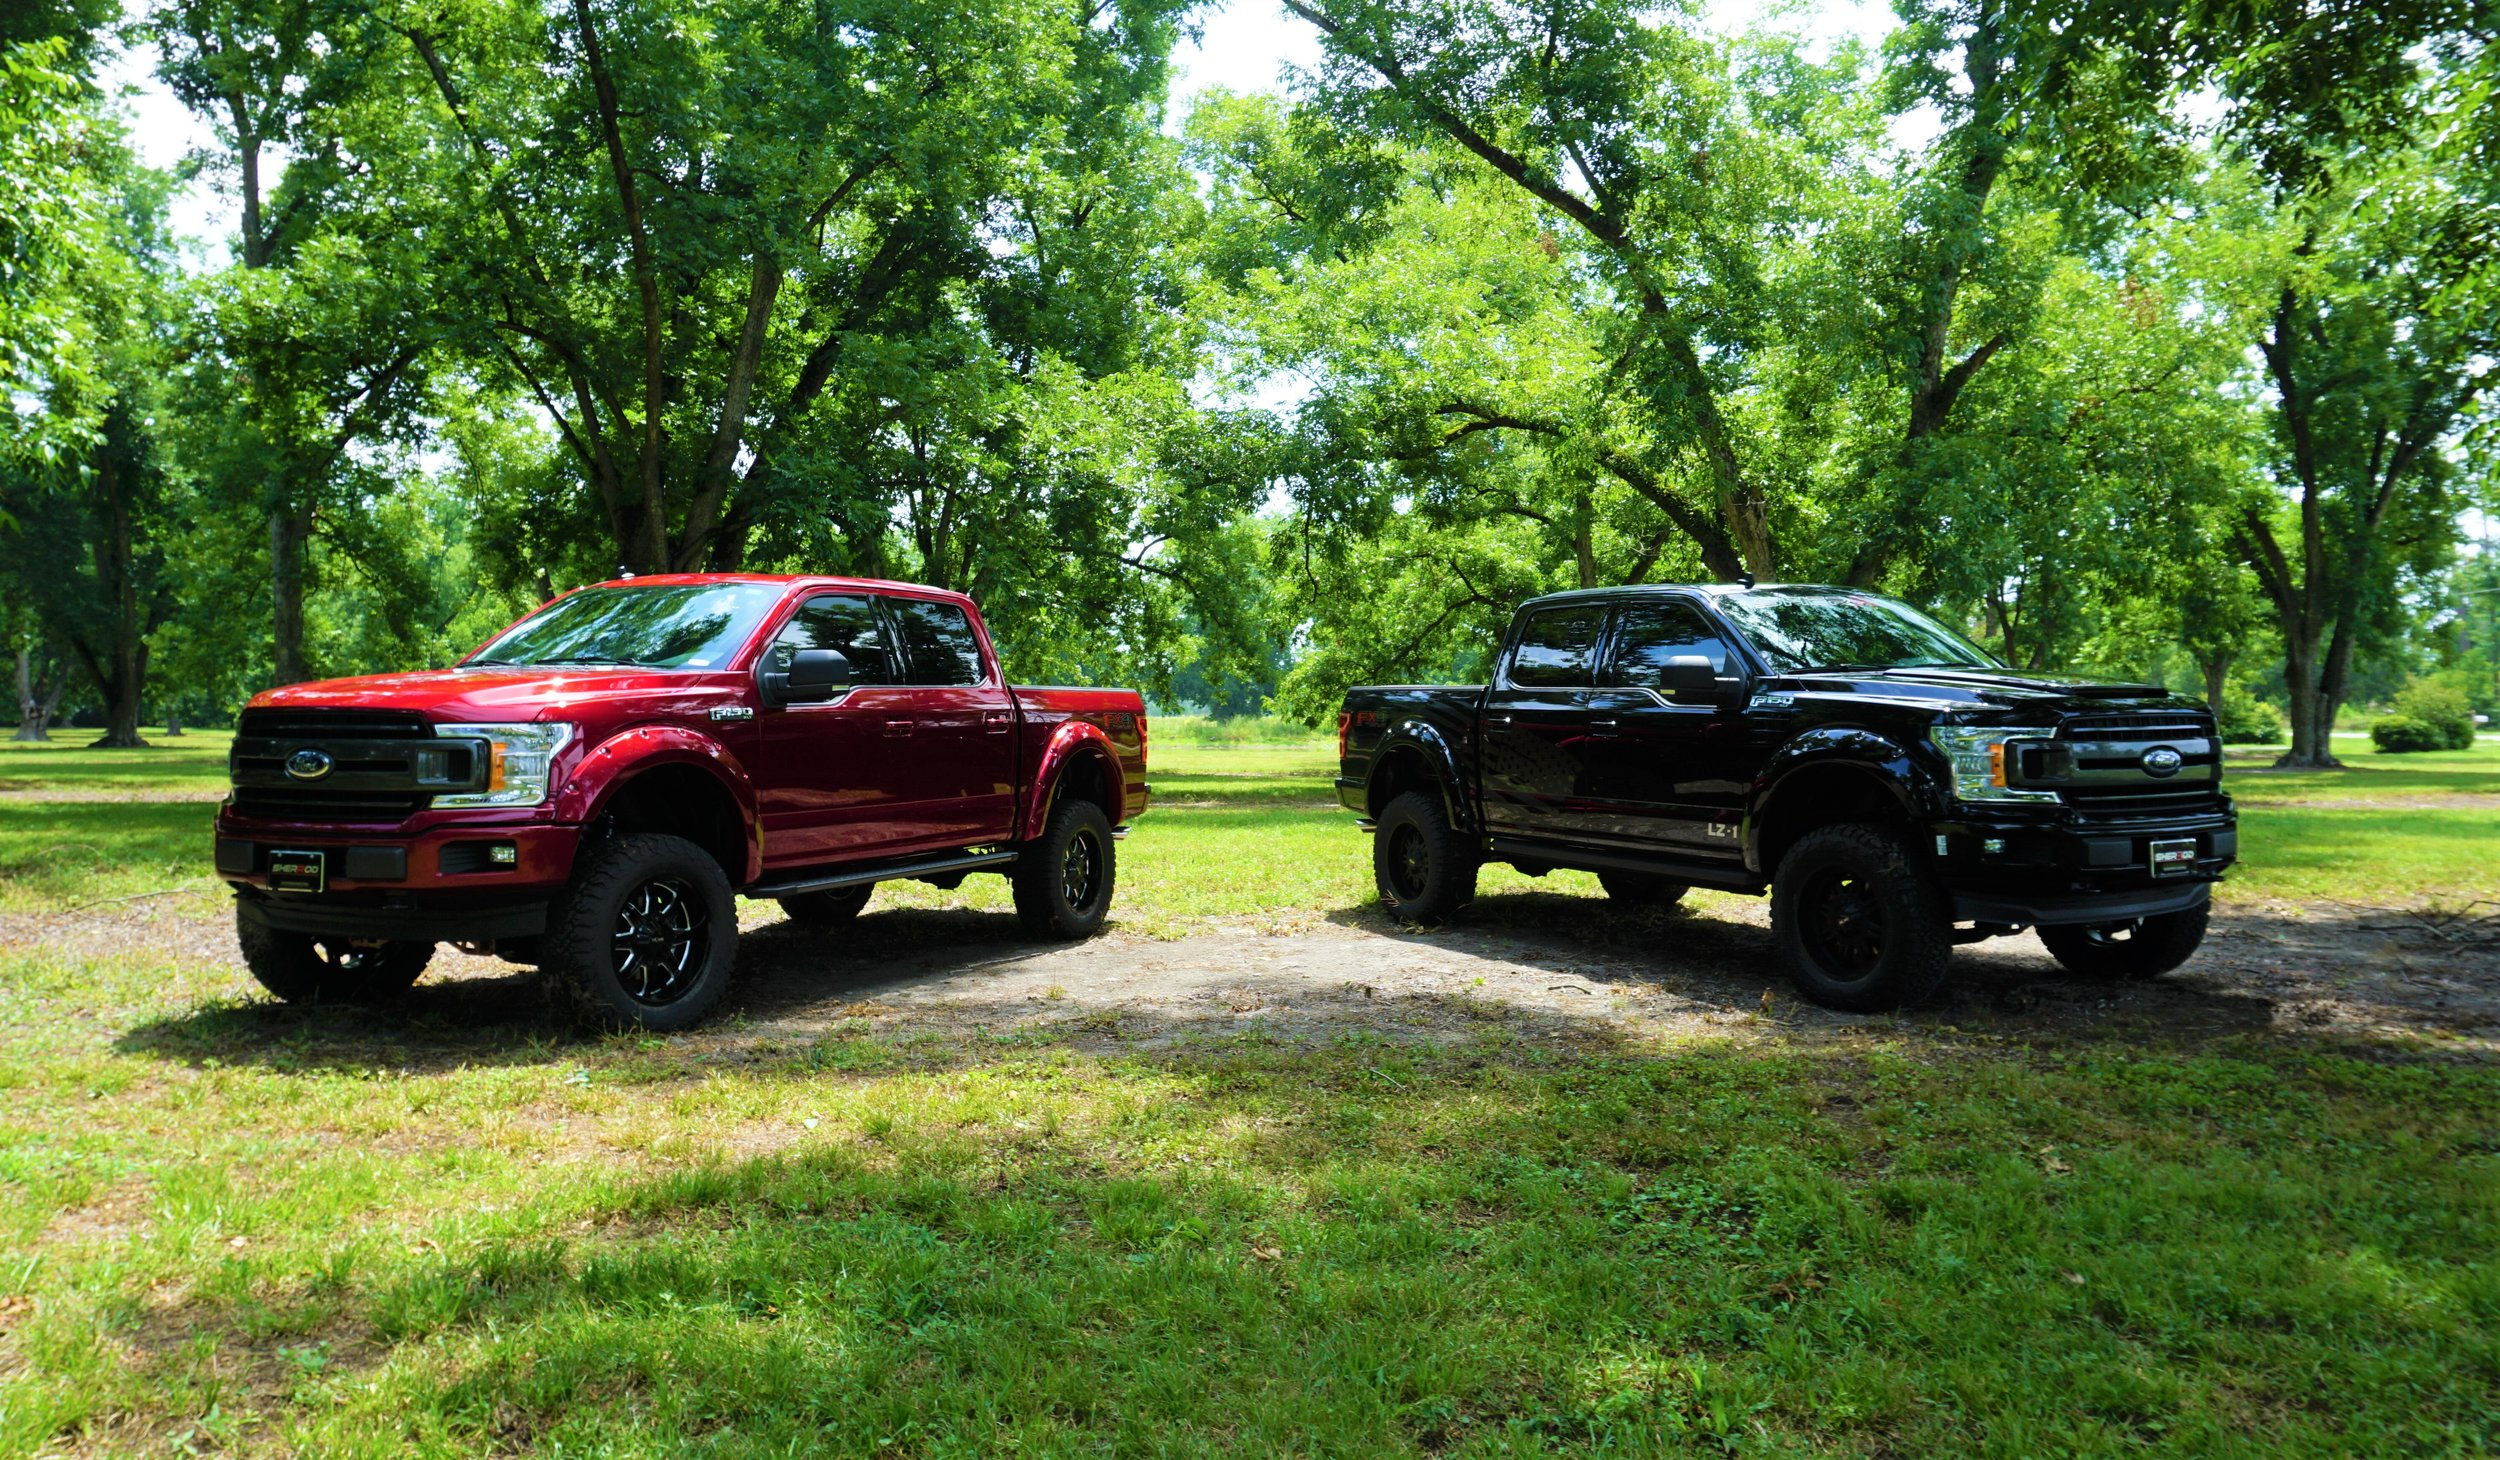 TWO TRUCKS IN THE SHADE